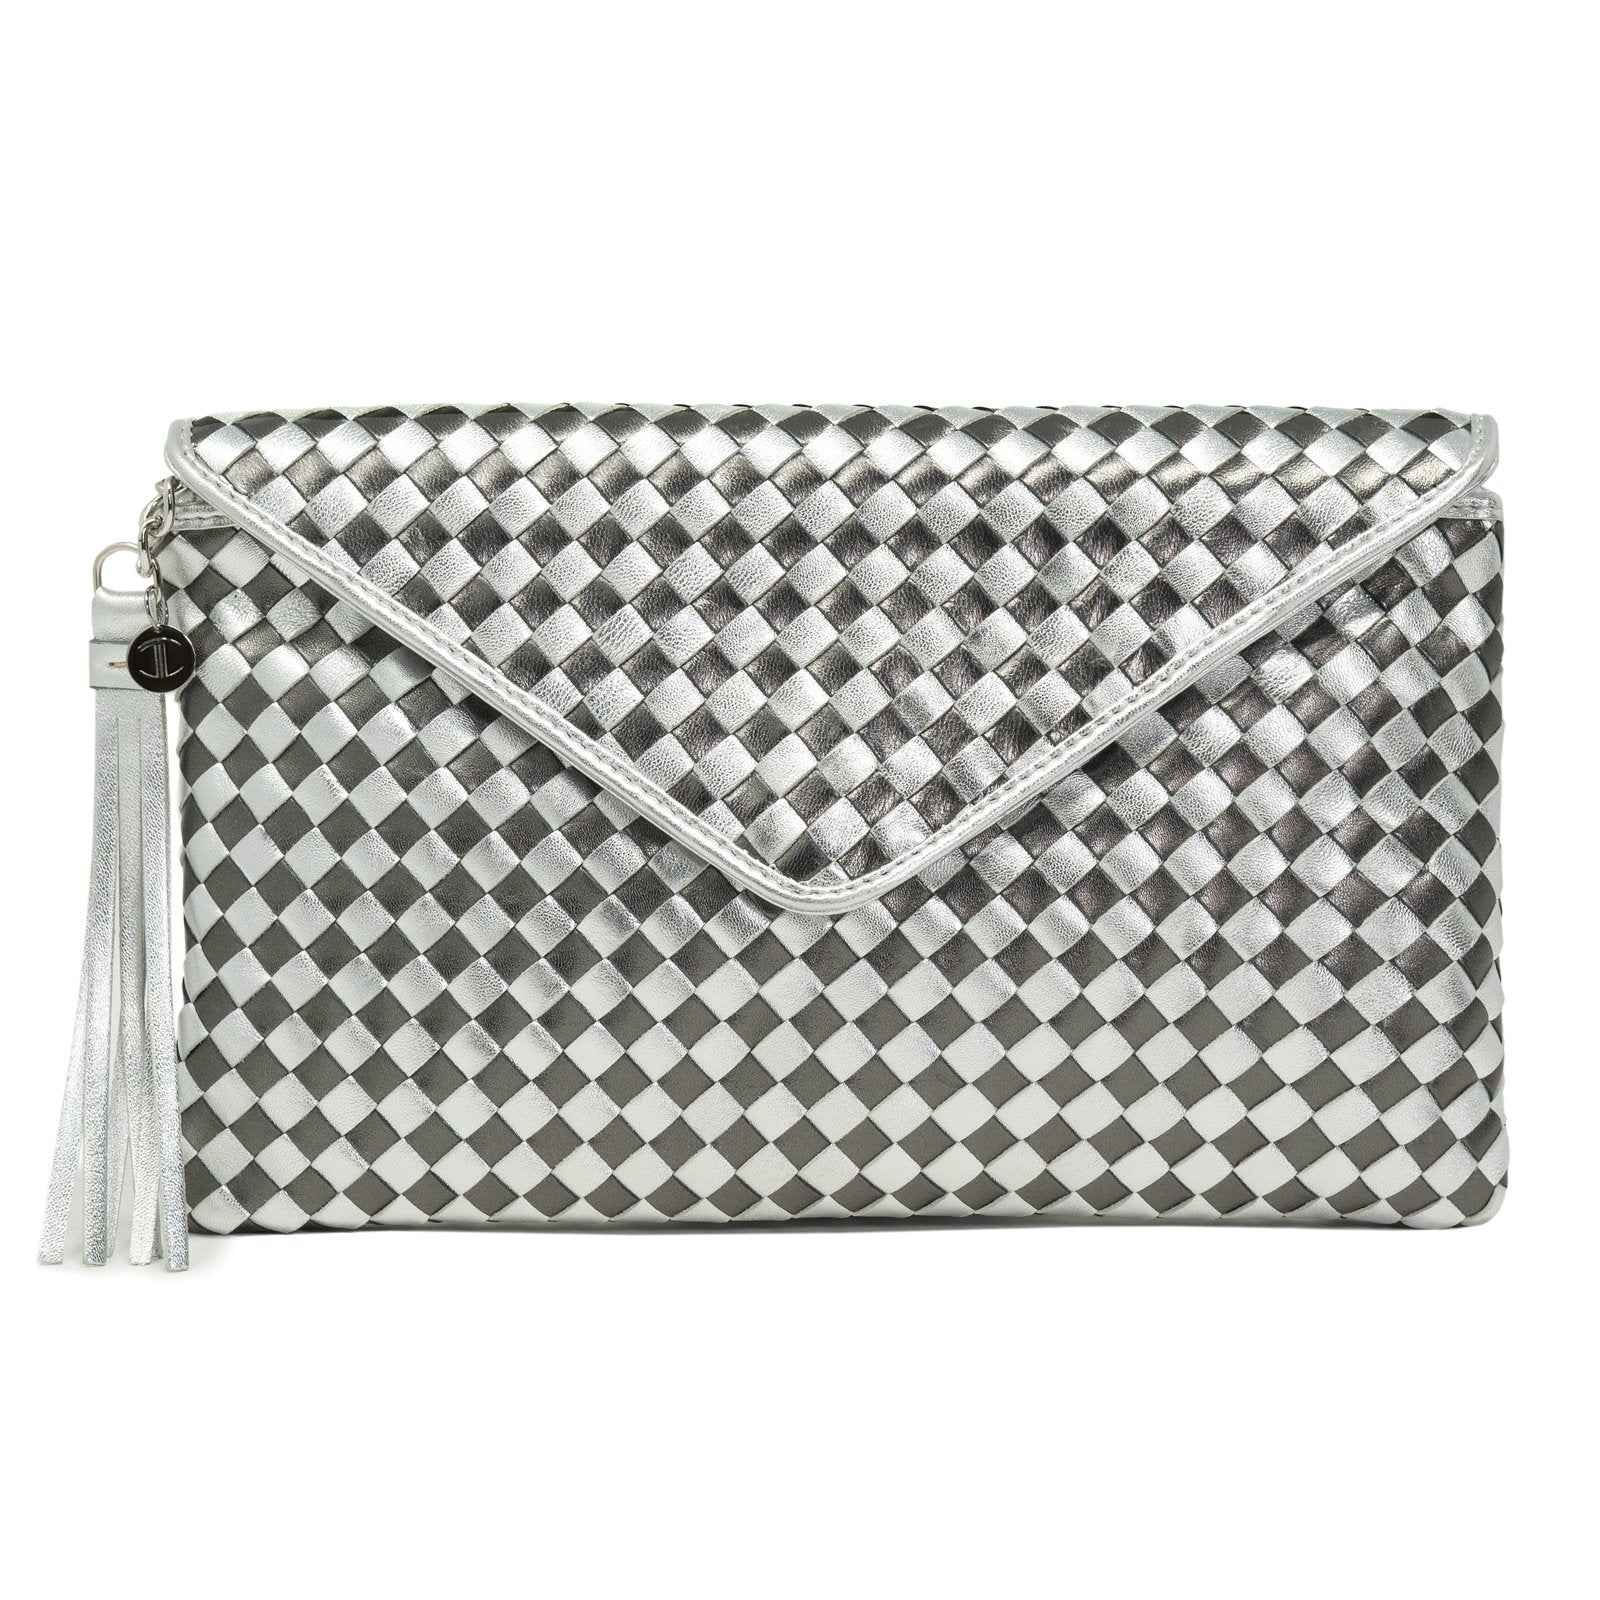 Women Intrecciato Leather Clutch Intrecciato Quadro Gun Metal - Jennifer Tattanelli